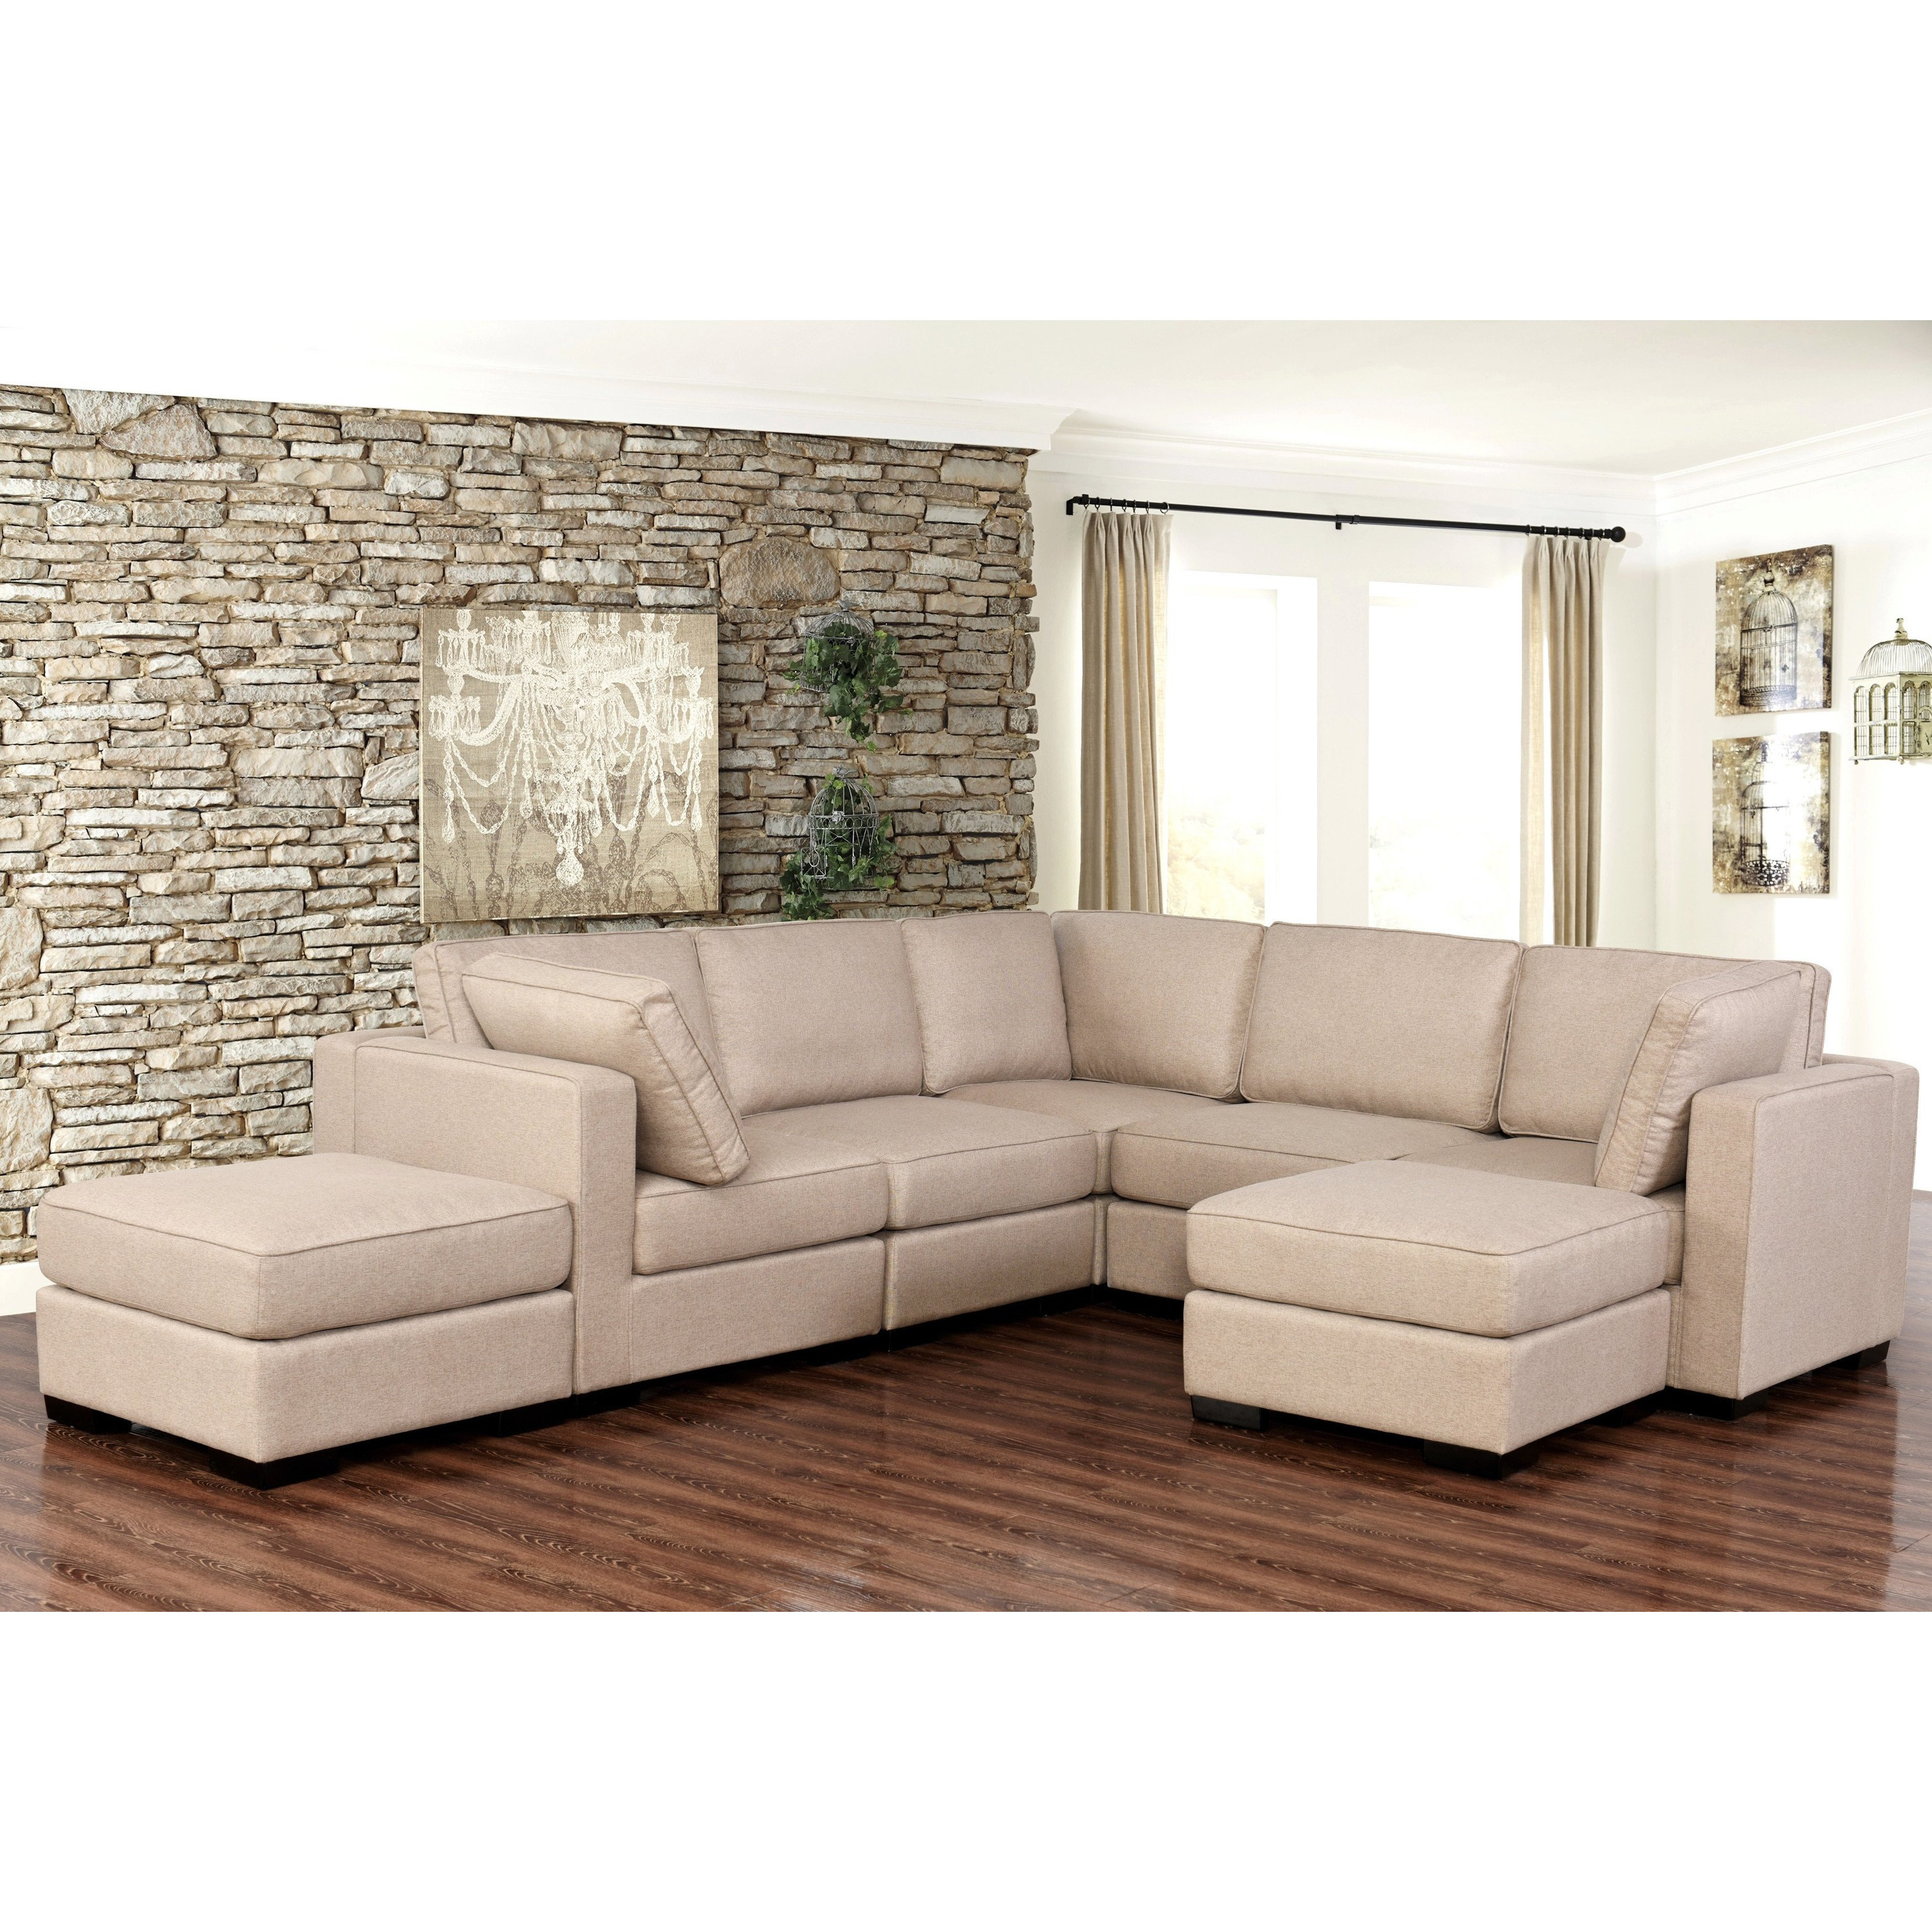 Shop Abbyson Harper Fabric Modular 7 Piece Sectional – Free Shipping In Harper Down Oversized Sofa Chairs (Image 15 of 20)